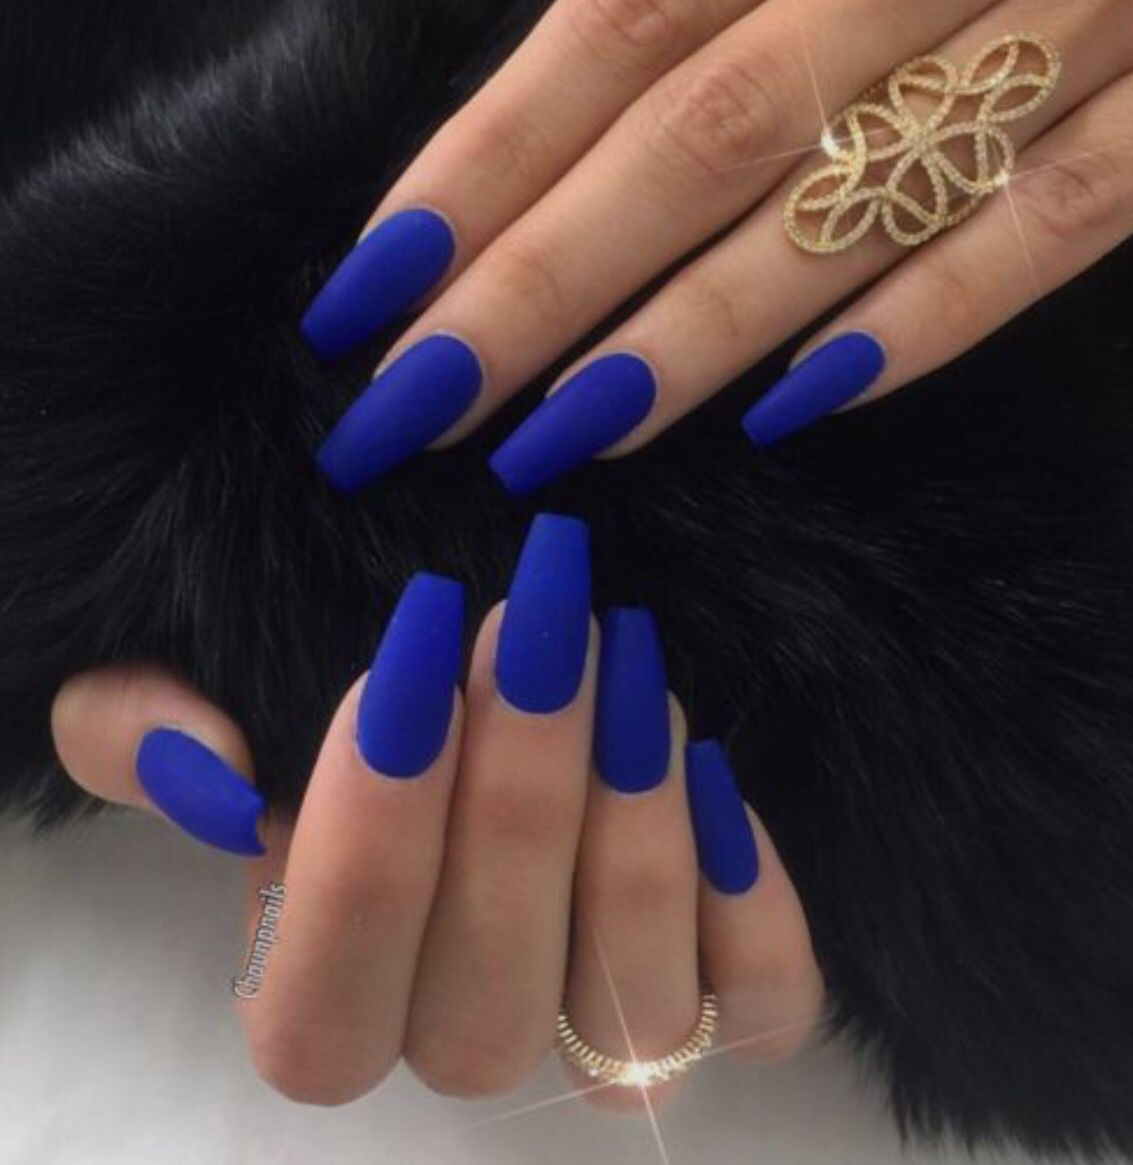 Love these Royal blue coffin shape nails! | Beauty | Pinterest ...